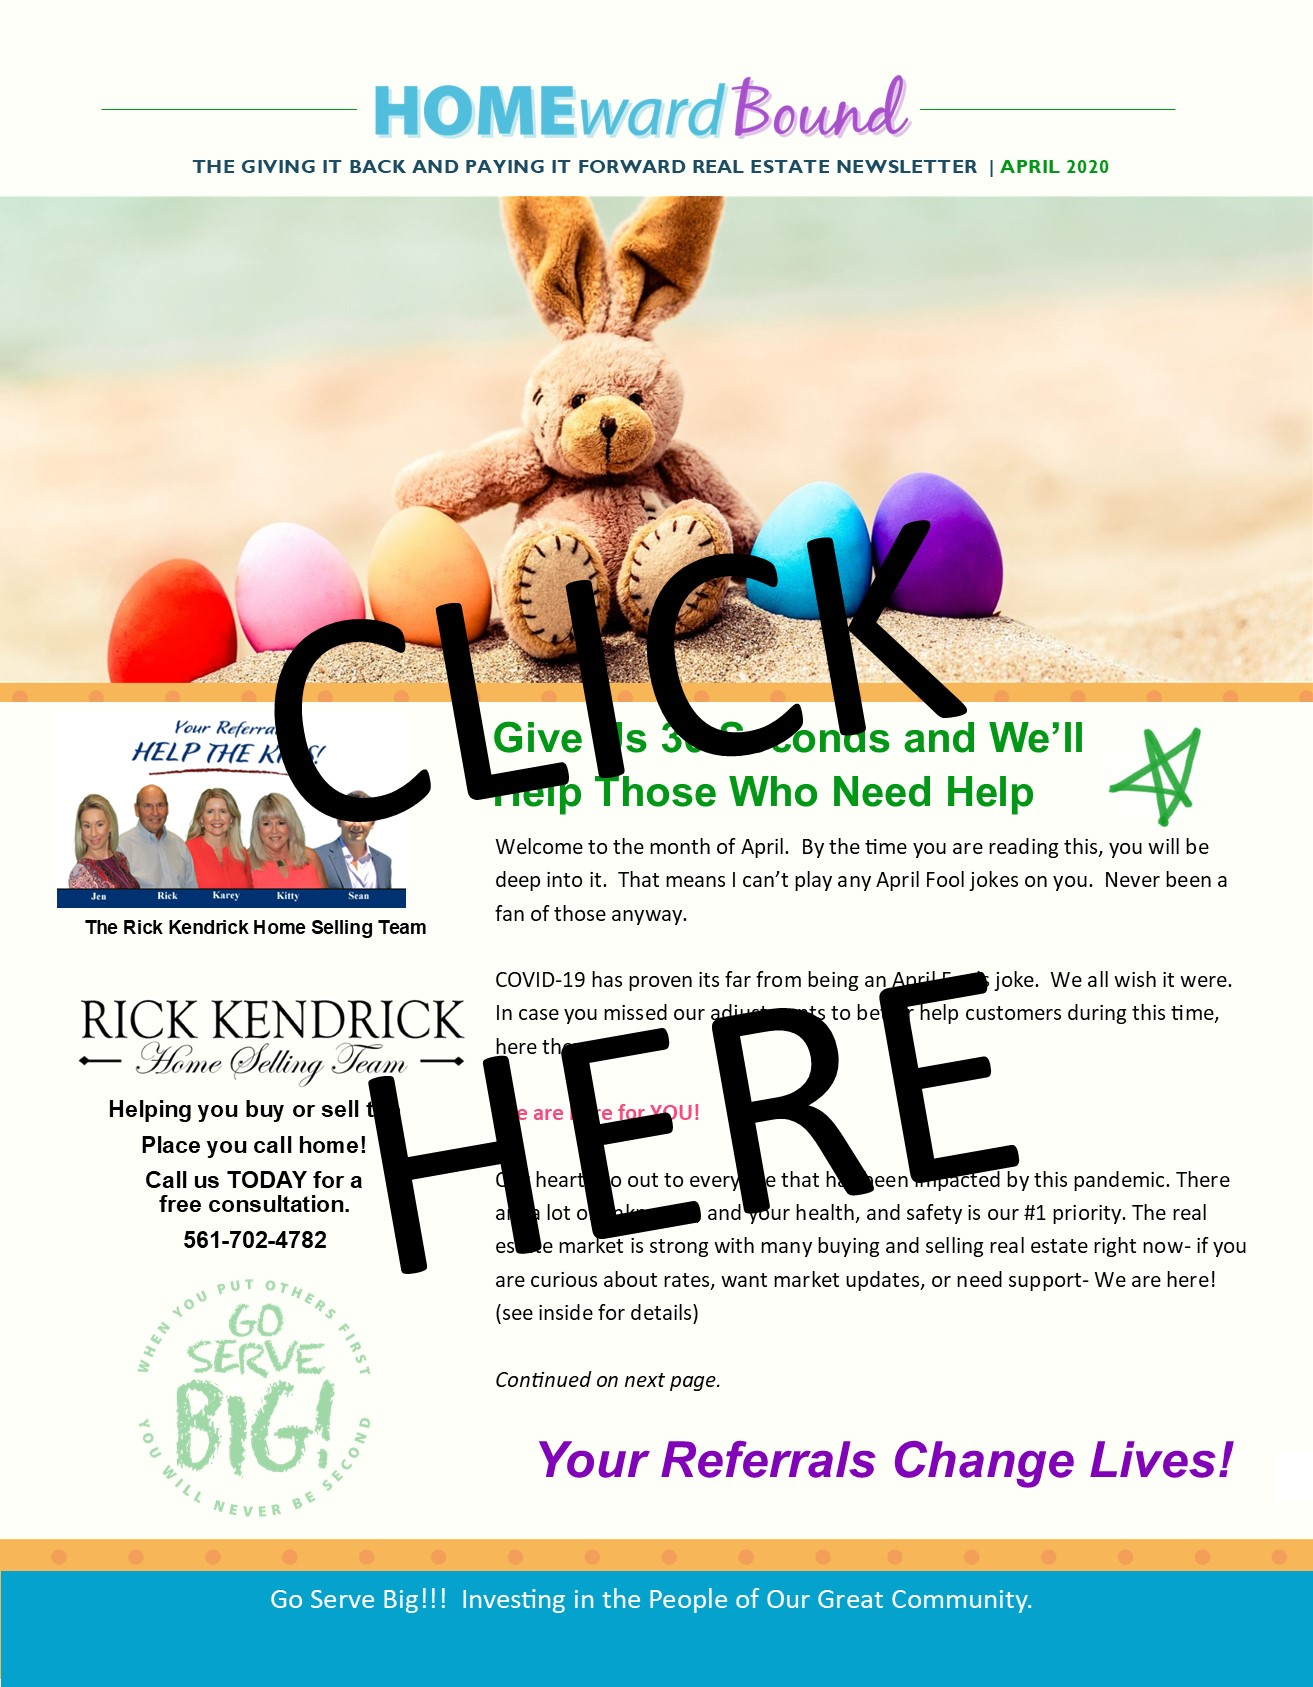 HomeWard Bound Referral Newsletter April 2020.jpg